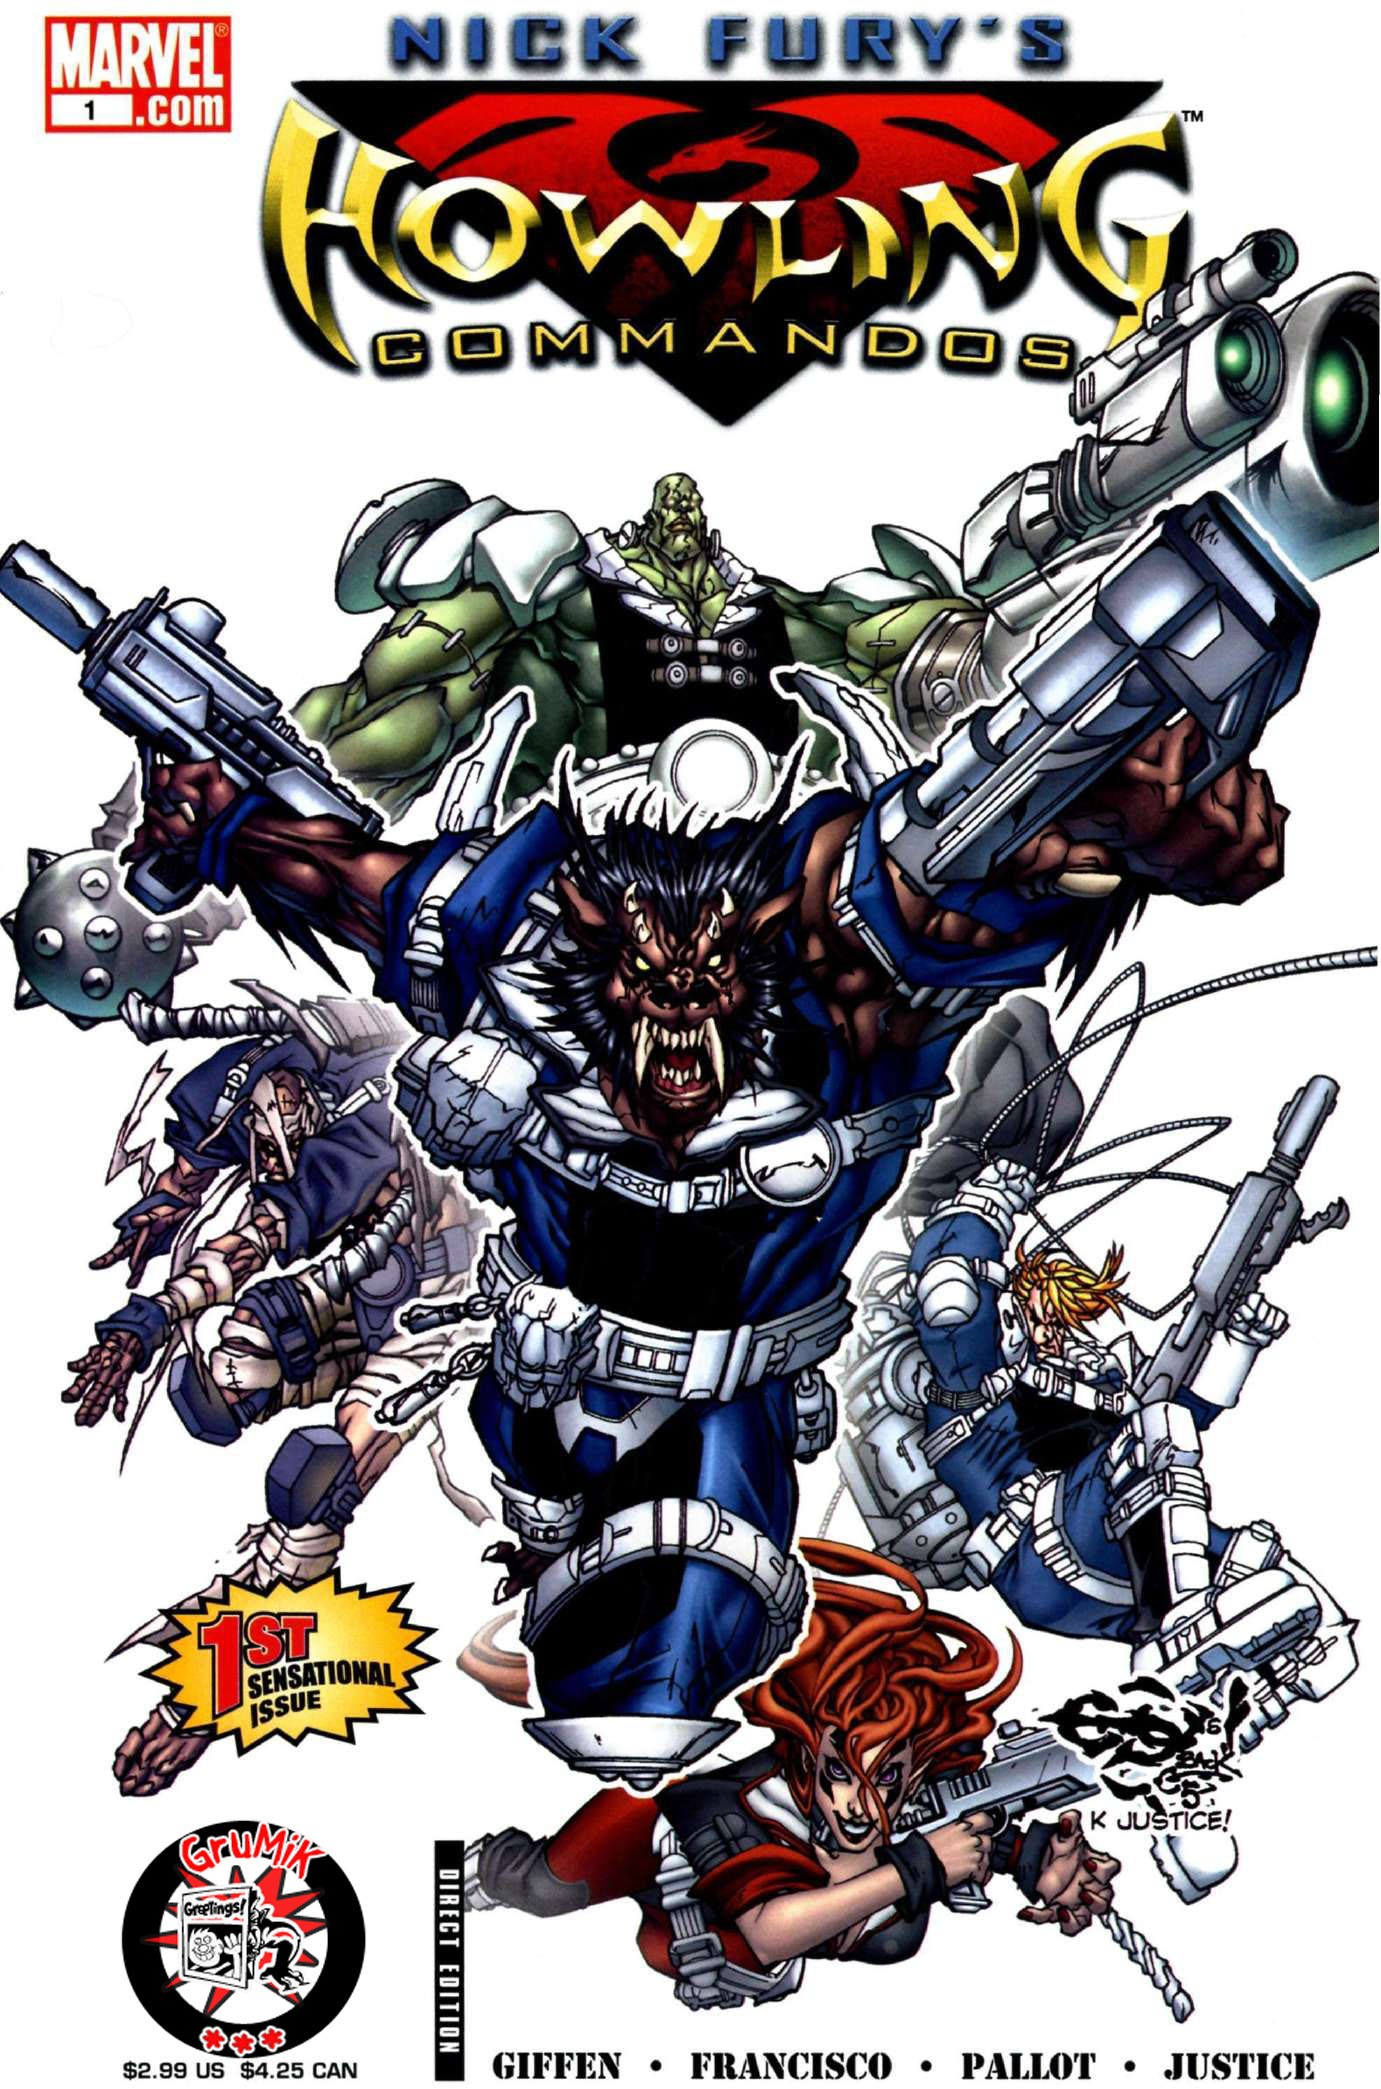 Read online Nick Fury's Howling Commandos comic -  Issue #1 - 1